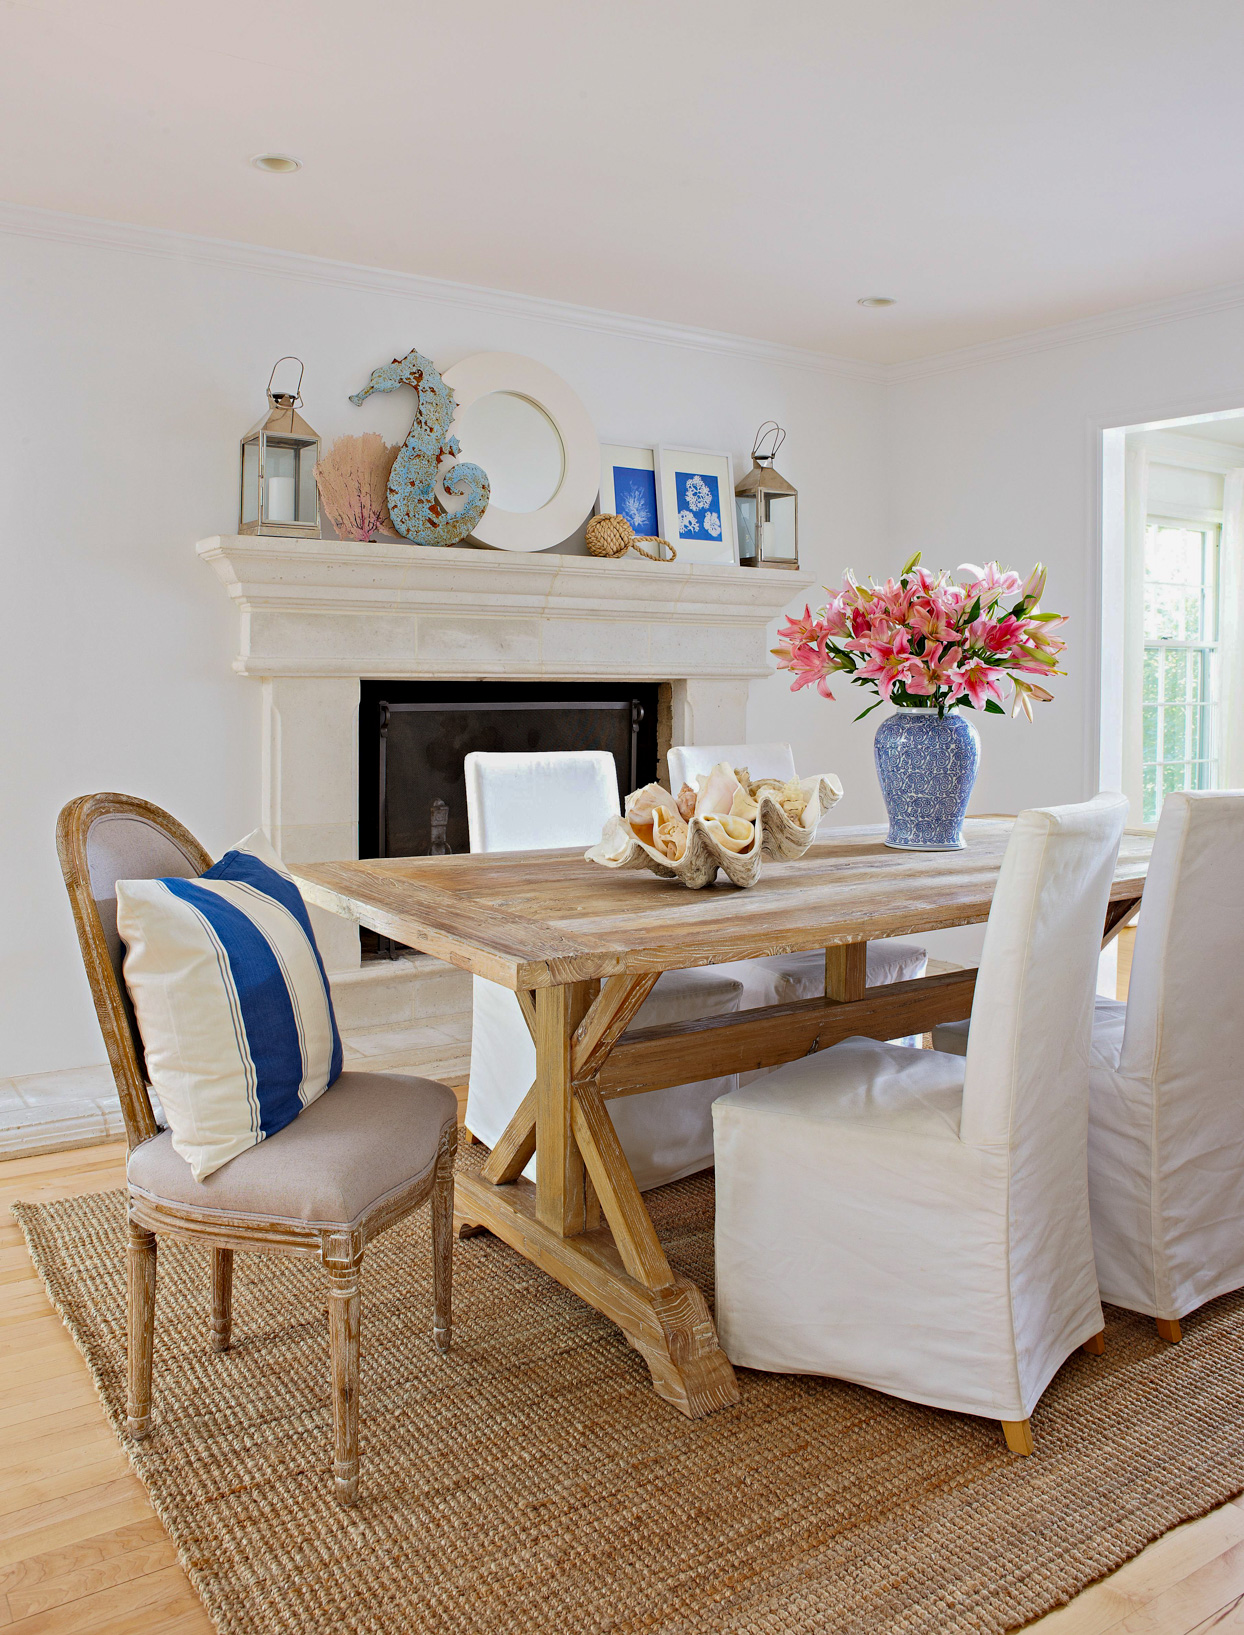 white dining room with blue accents and rustic wooden table